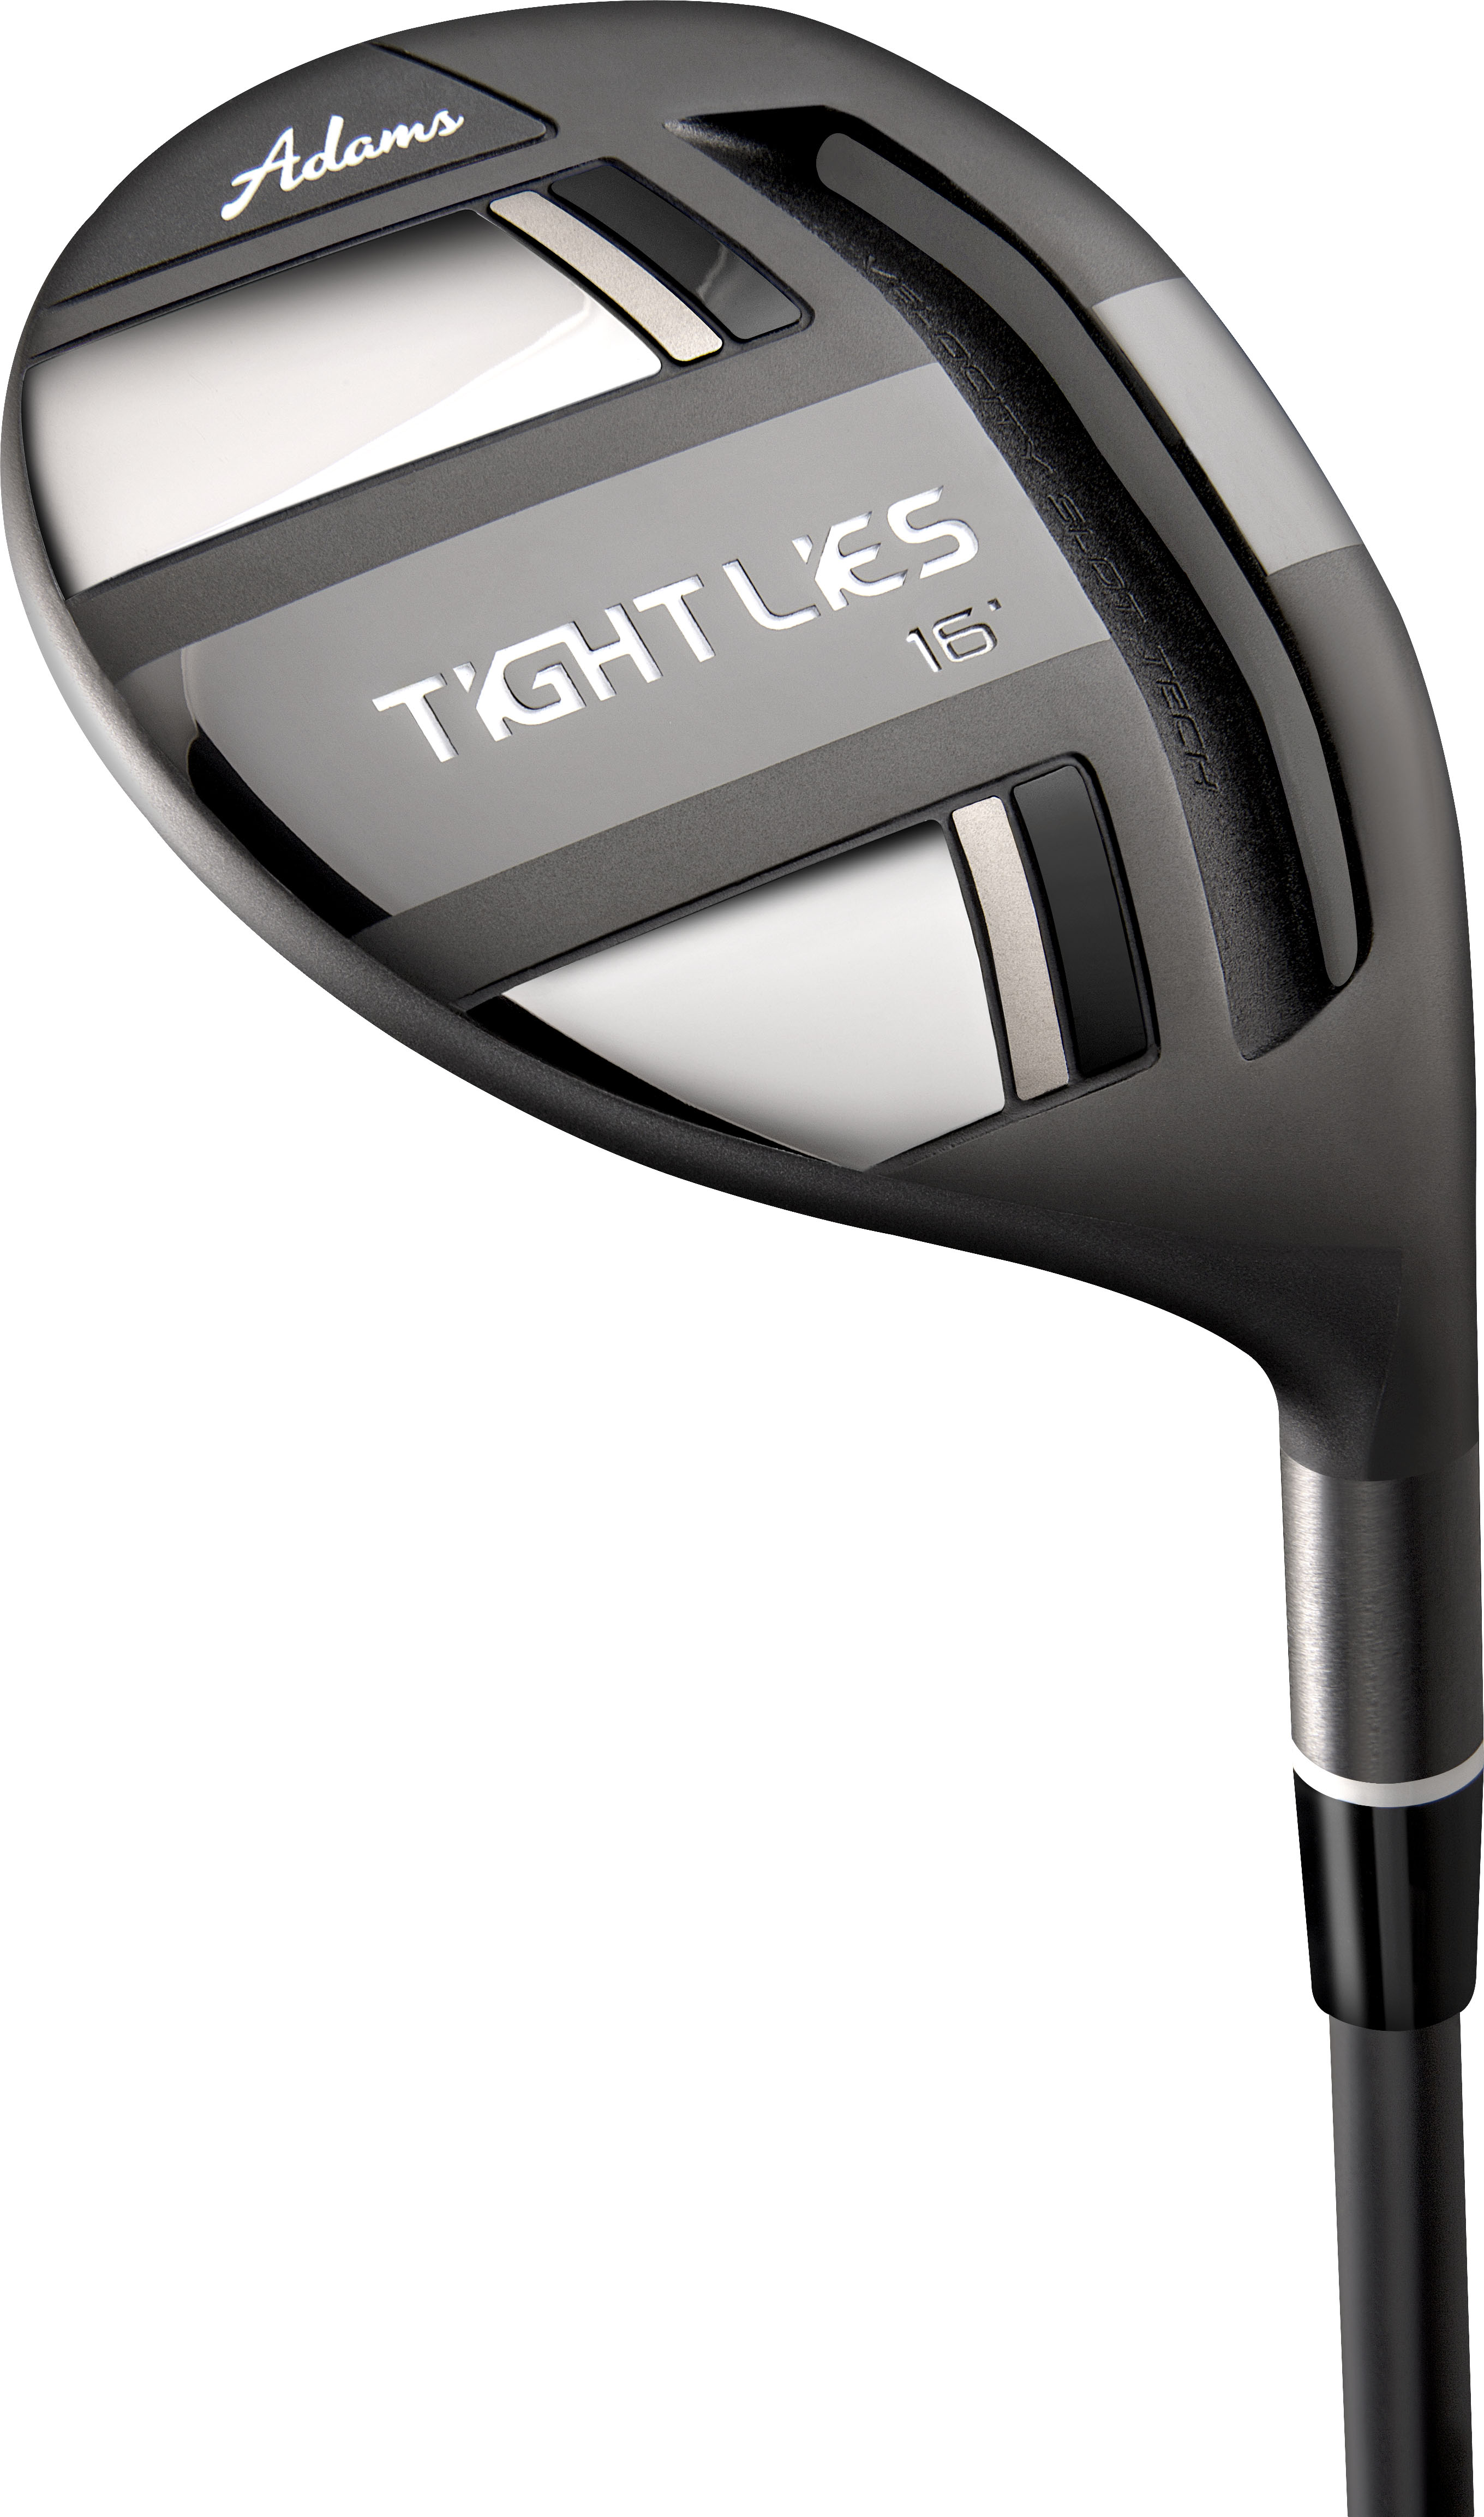 Majestic Golf Clubs Compare Prices Reviews & Buy Online @ Yahoo Shopping